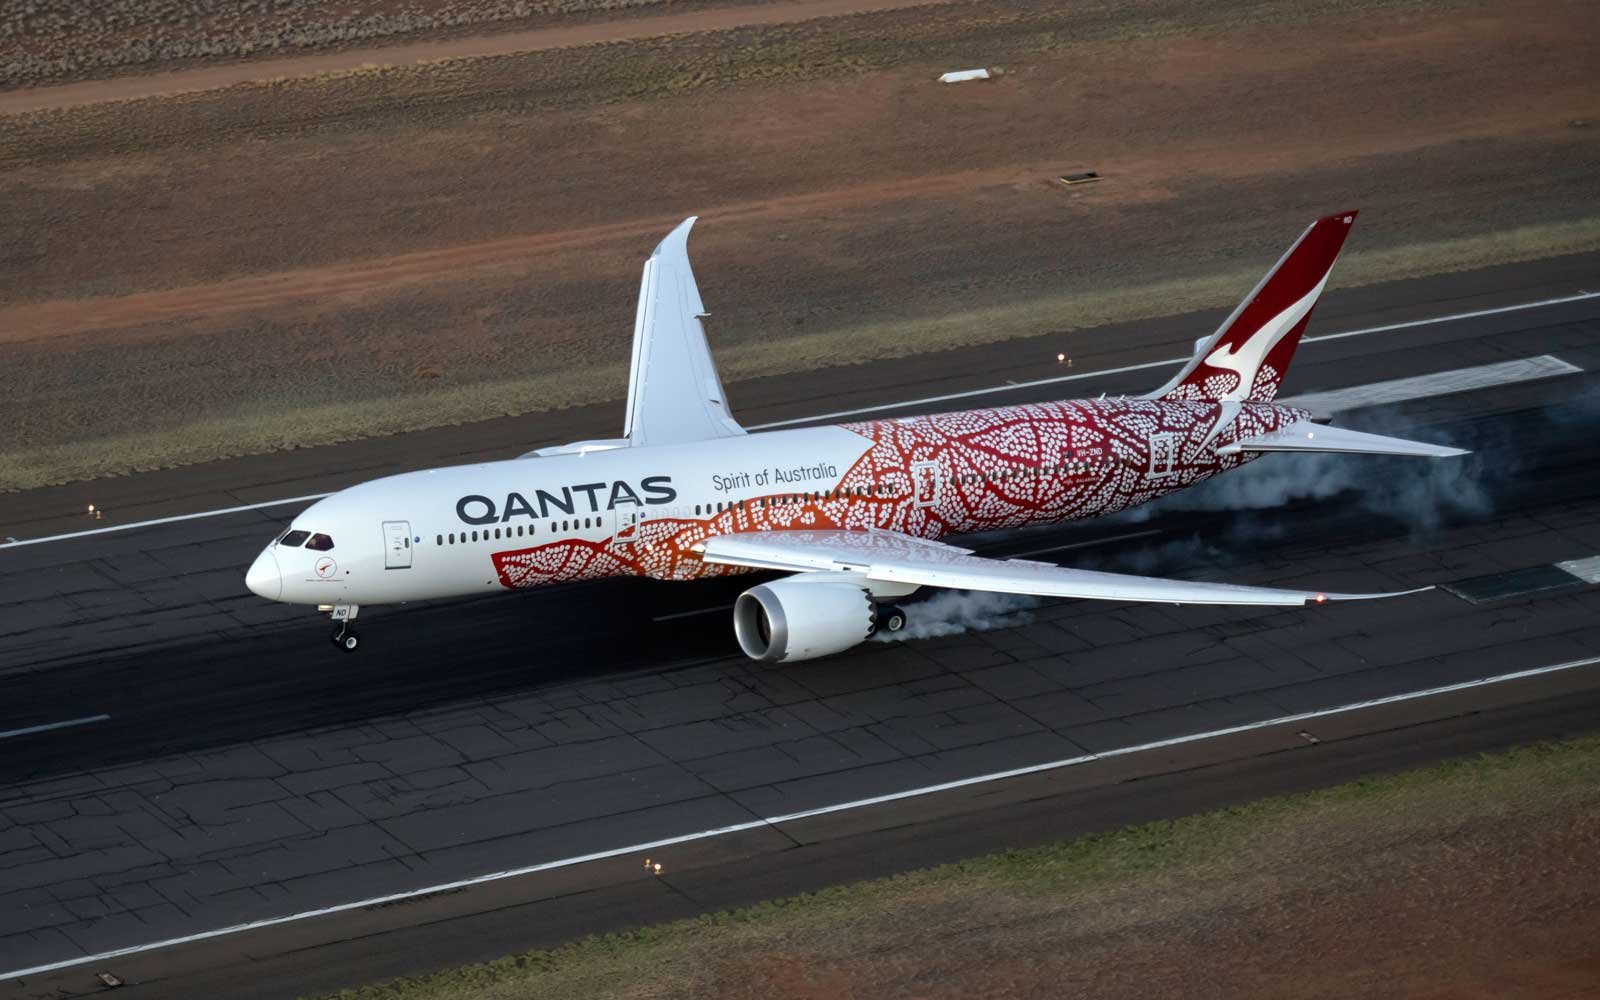 The First Nonstop Flight From Europe to Australia Is Taking